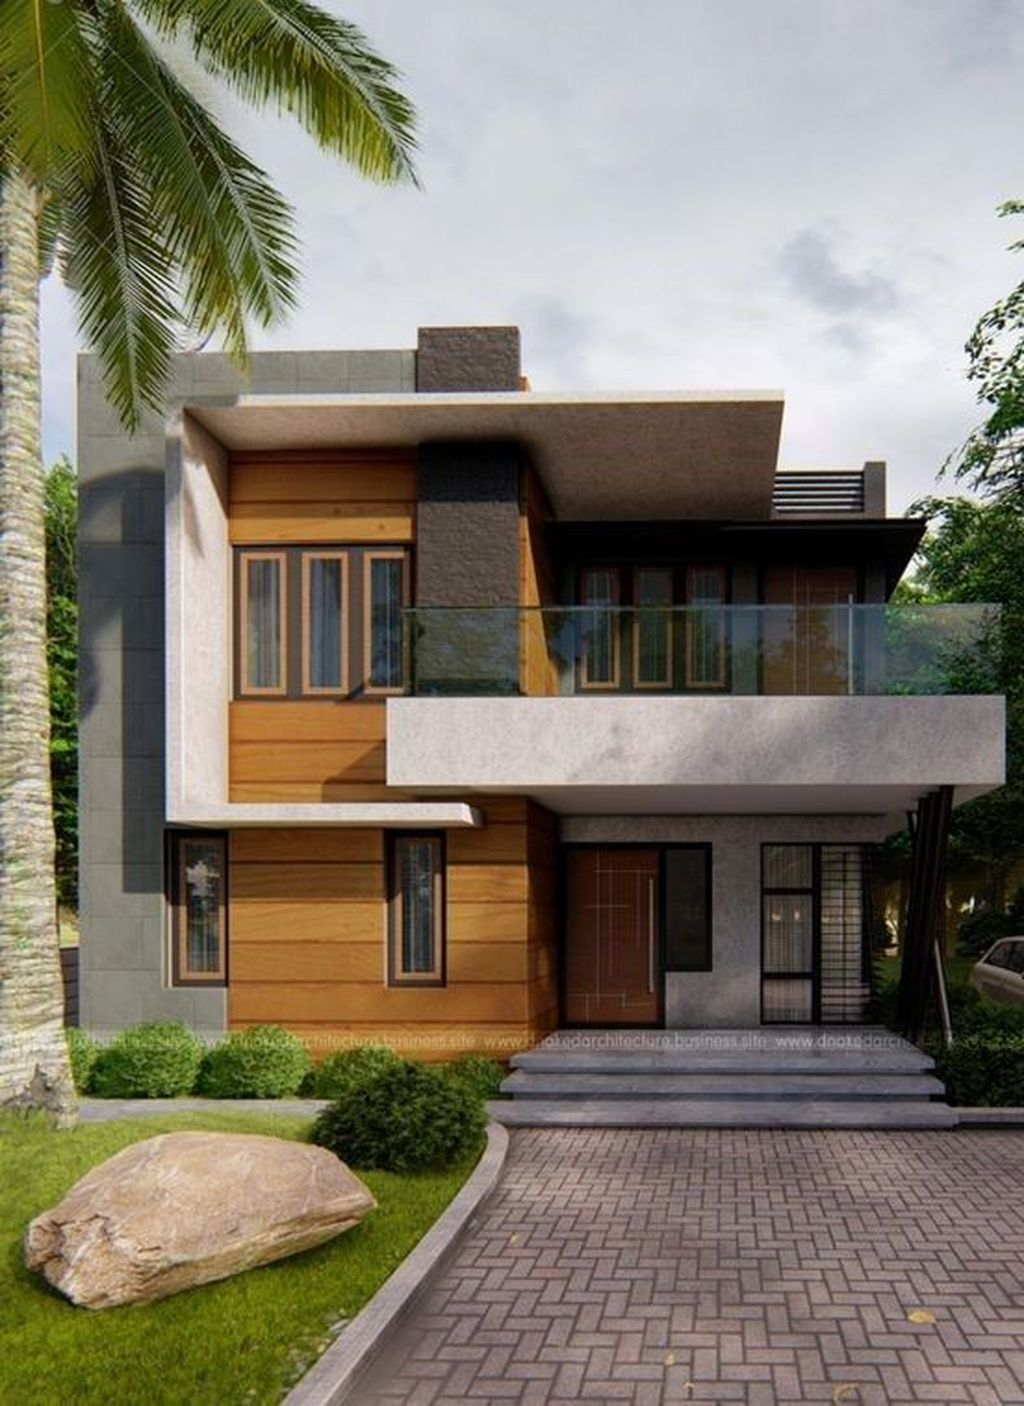 Inspiring Modern House Architecture Design Ideas 01